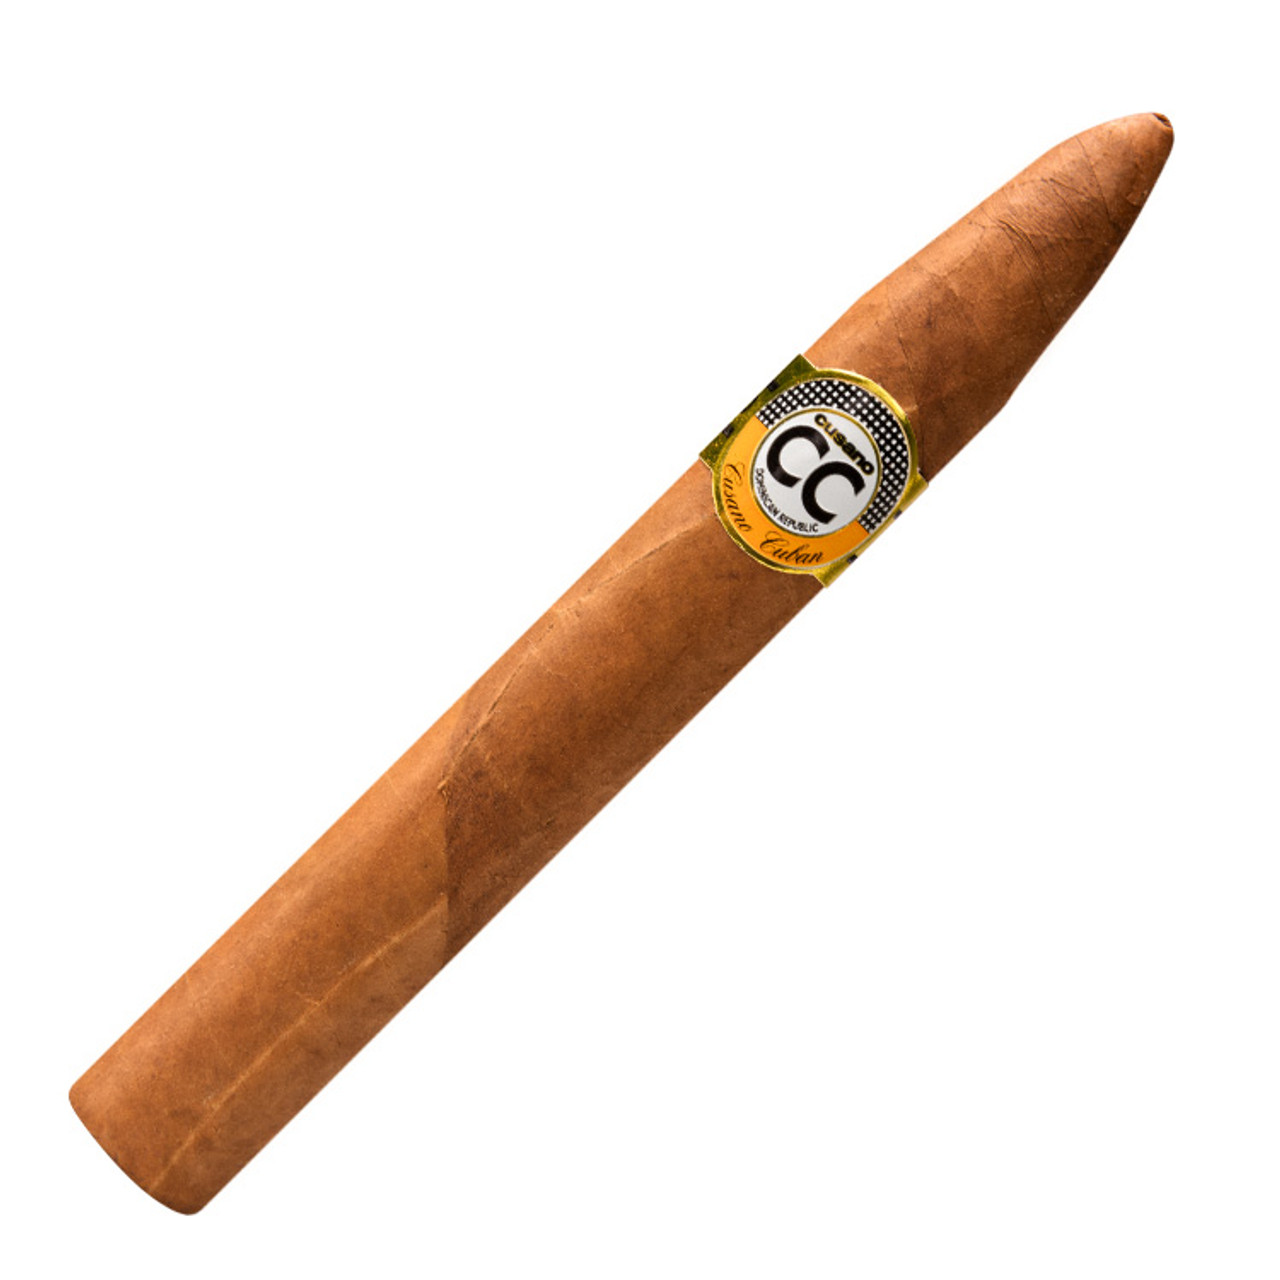 Cusano CC Bundle Torpedo Cigars - 6 x 52 (Bundle of 20)